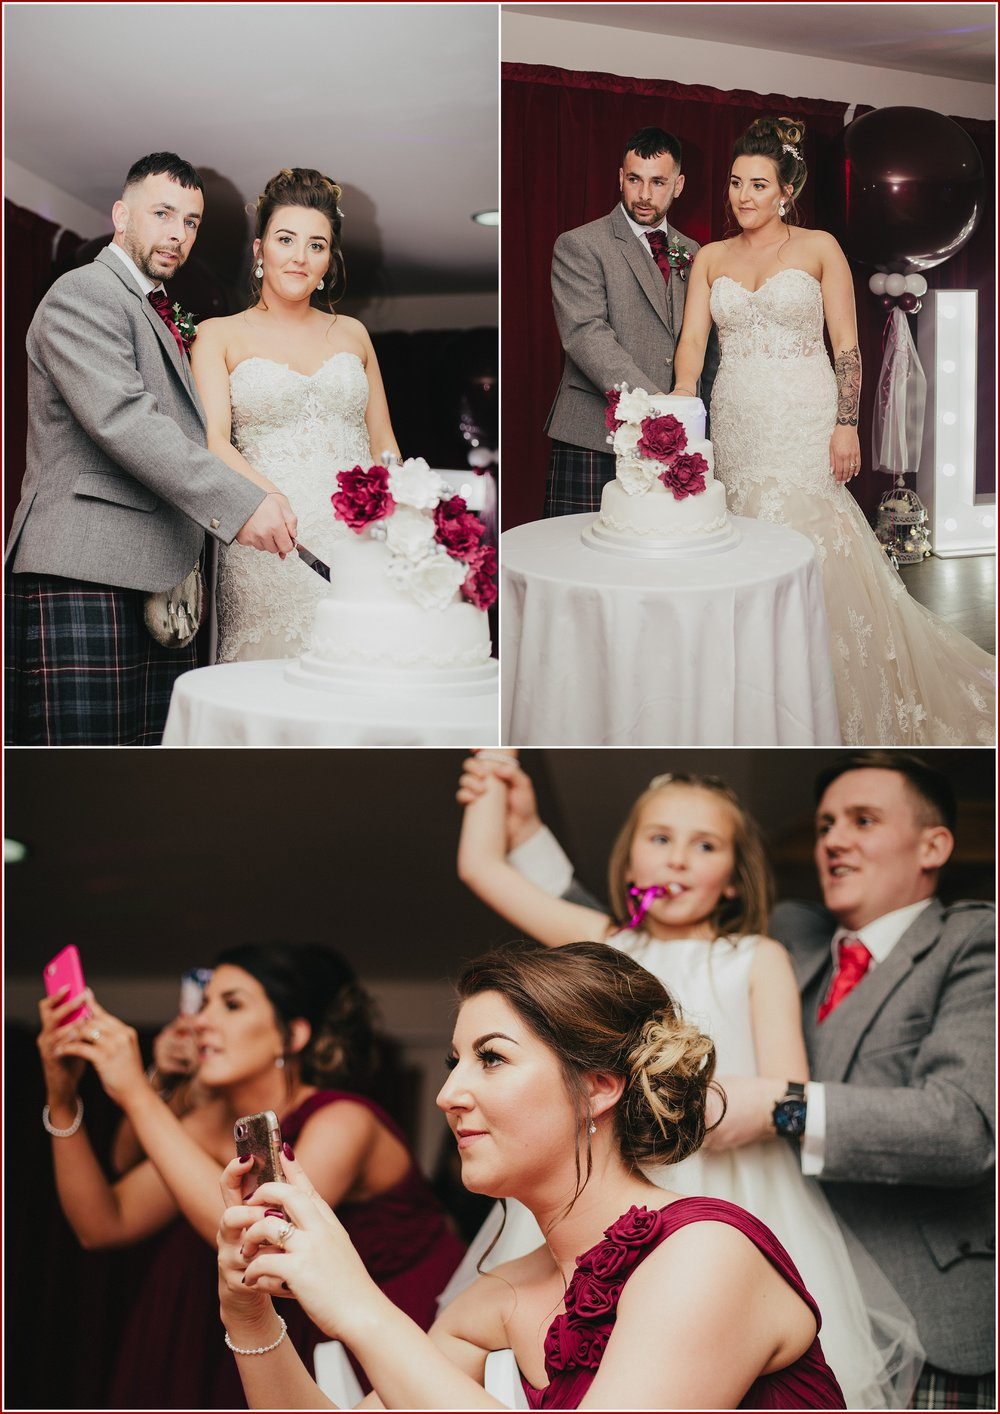 Kirsty_Brown_Wedding_Photography_0116.jpg